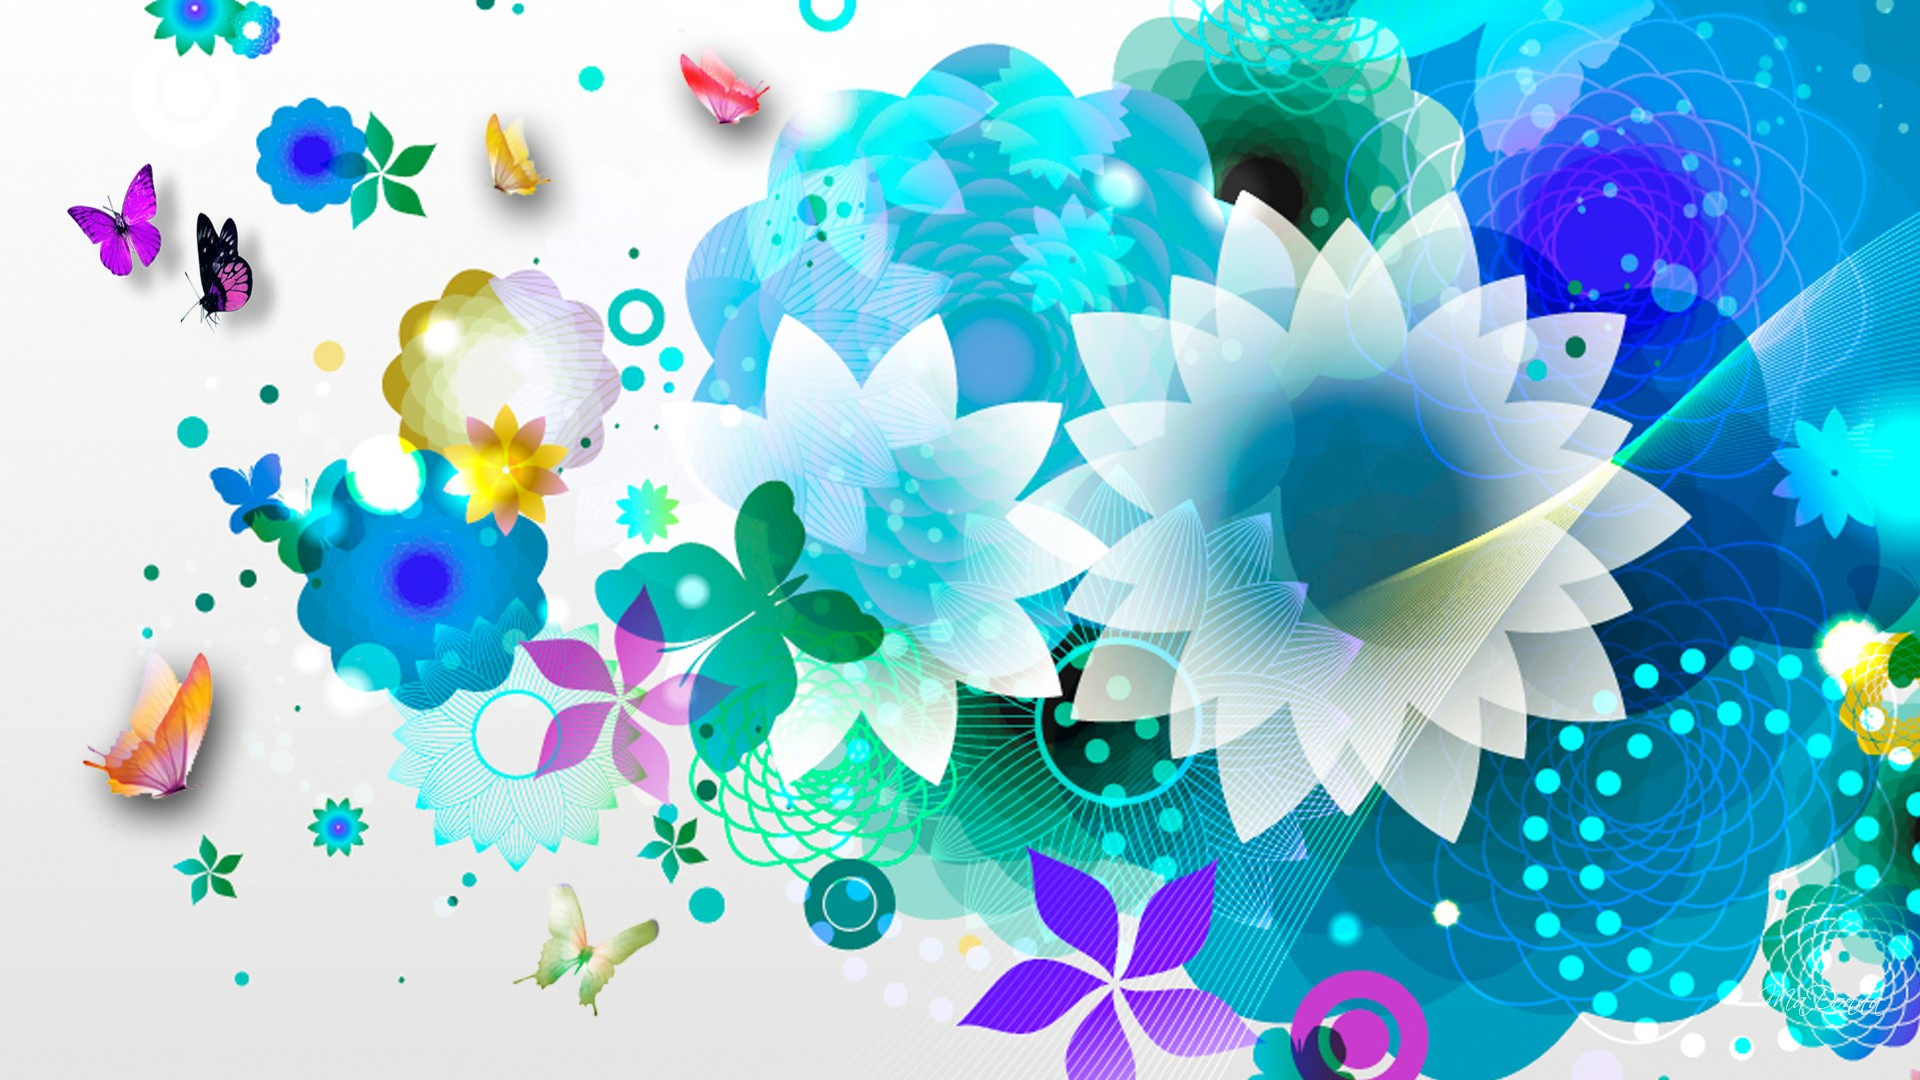 flower-abstract-wallpaper